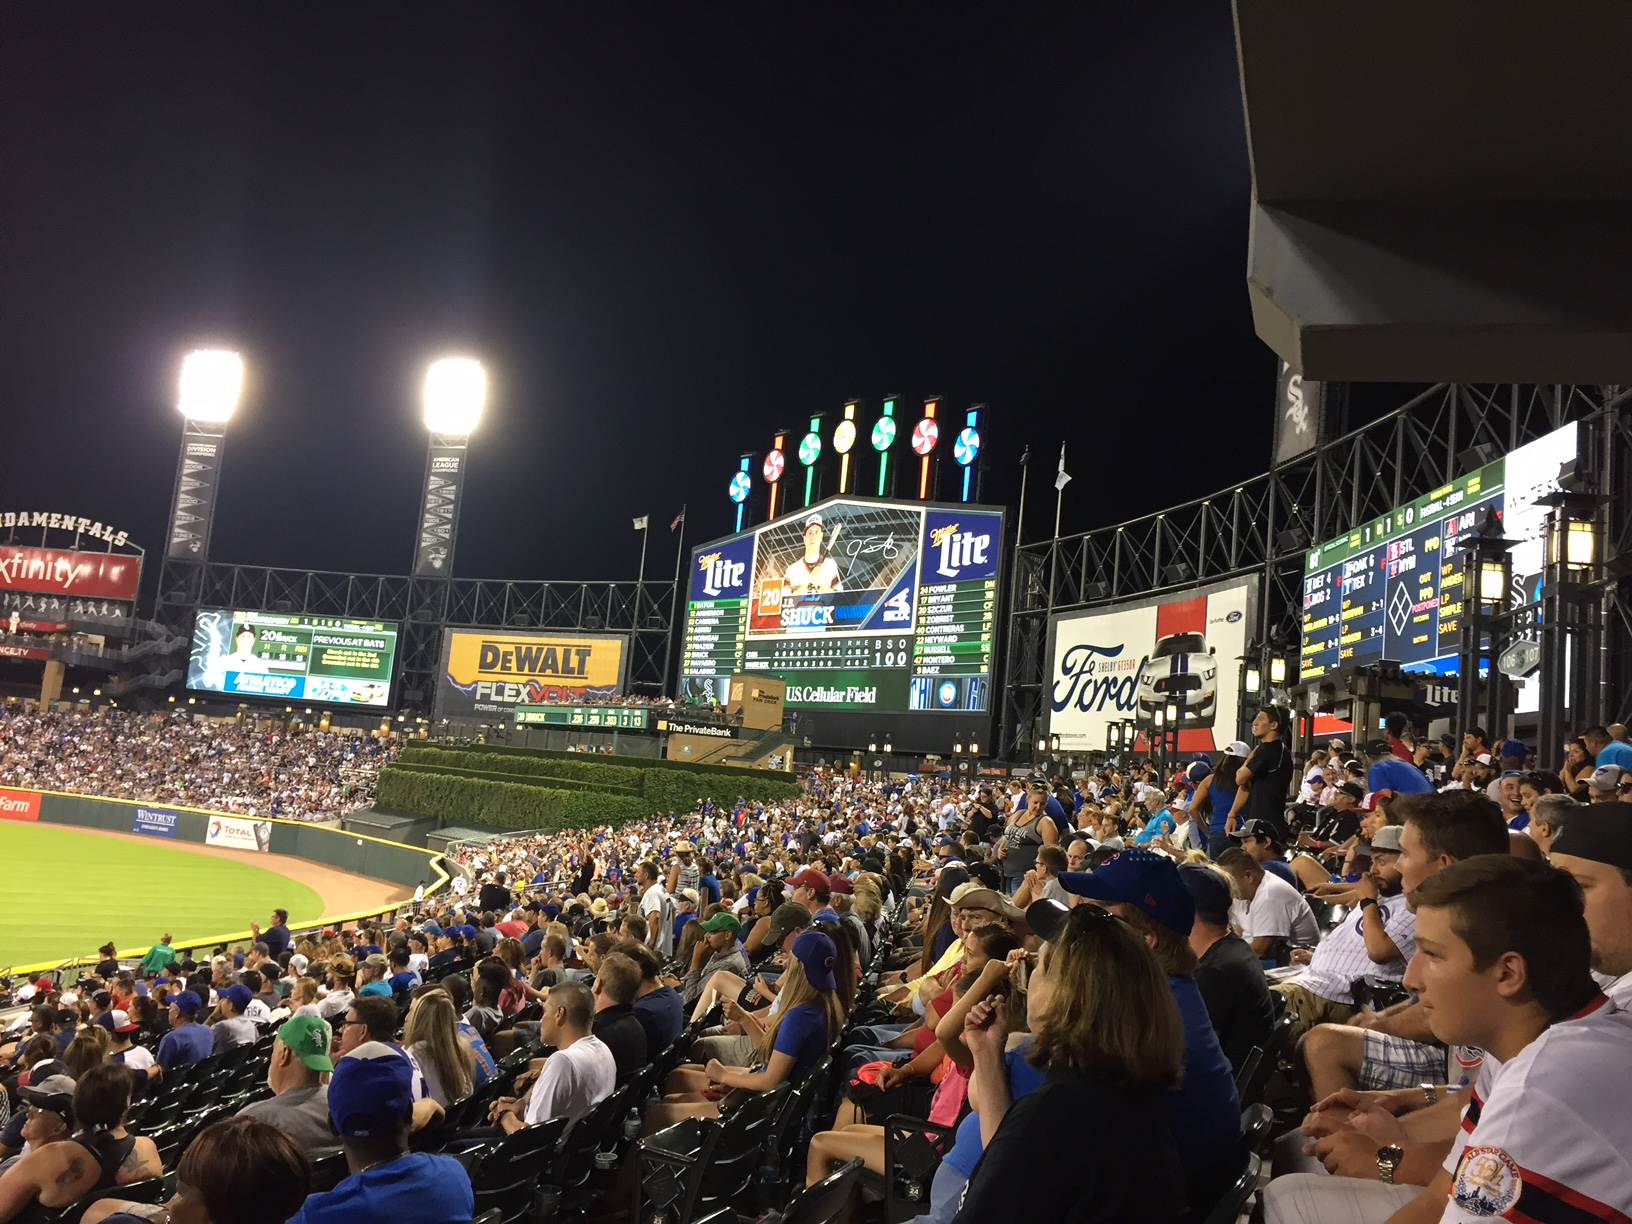 The Good Guys take first game in the series when the Cubs visited the White Sox. (photo by Kerry Finsand)